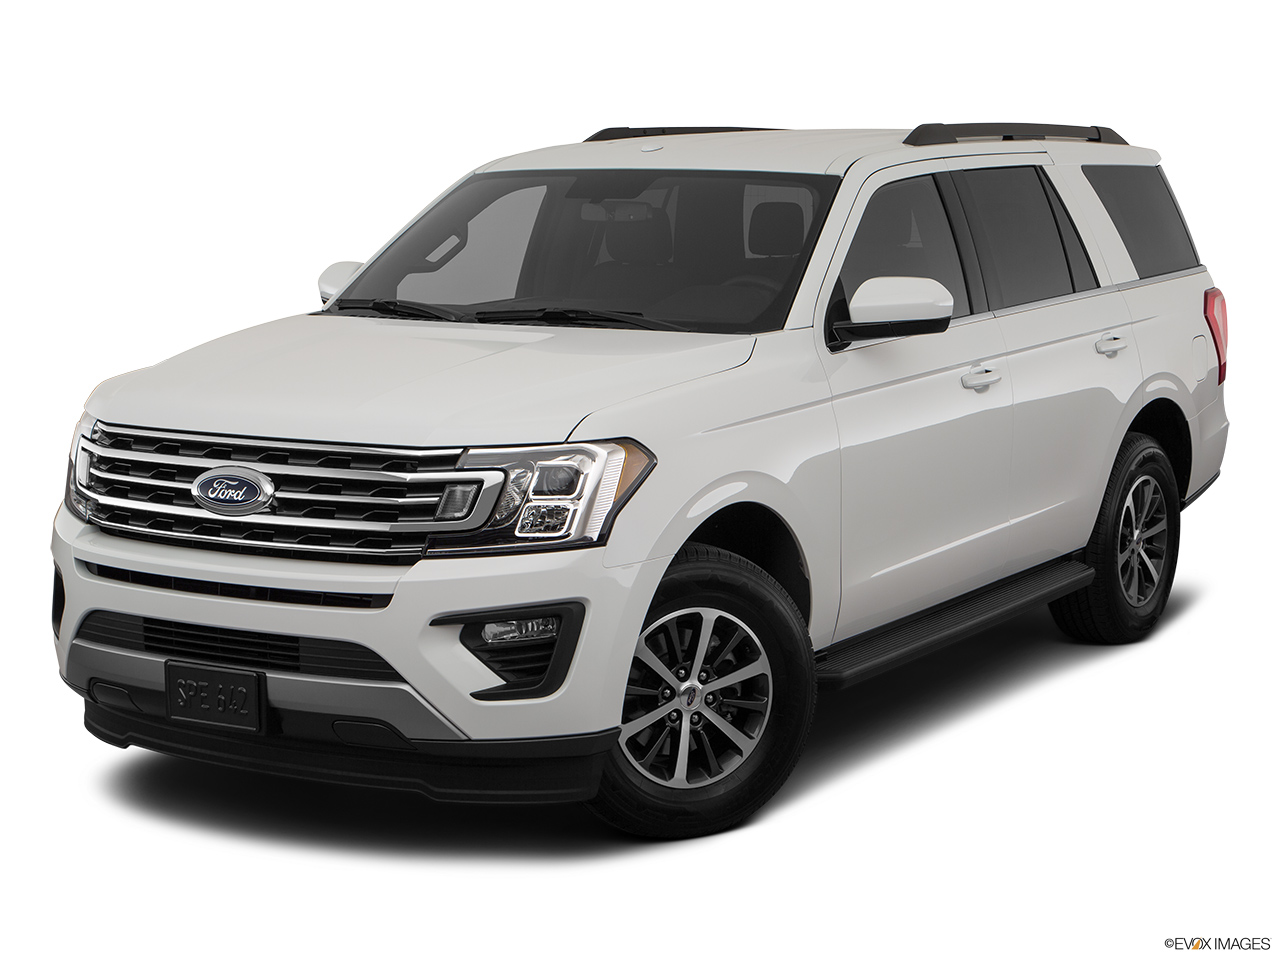 Ford Expedition 2018, Saudi Arabia, Front angle view.